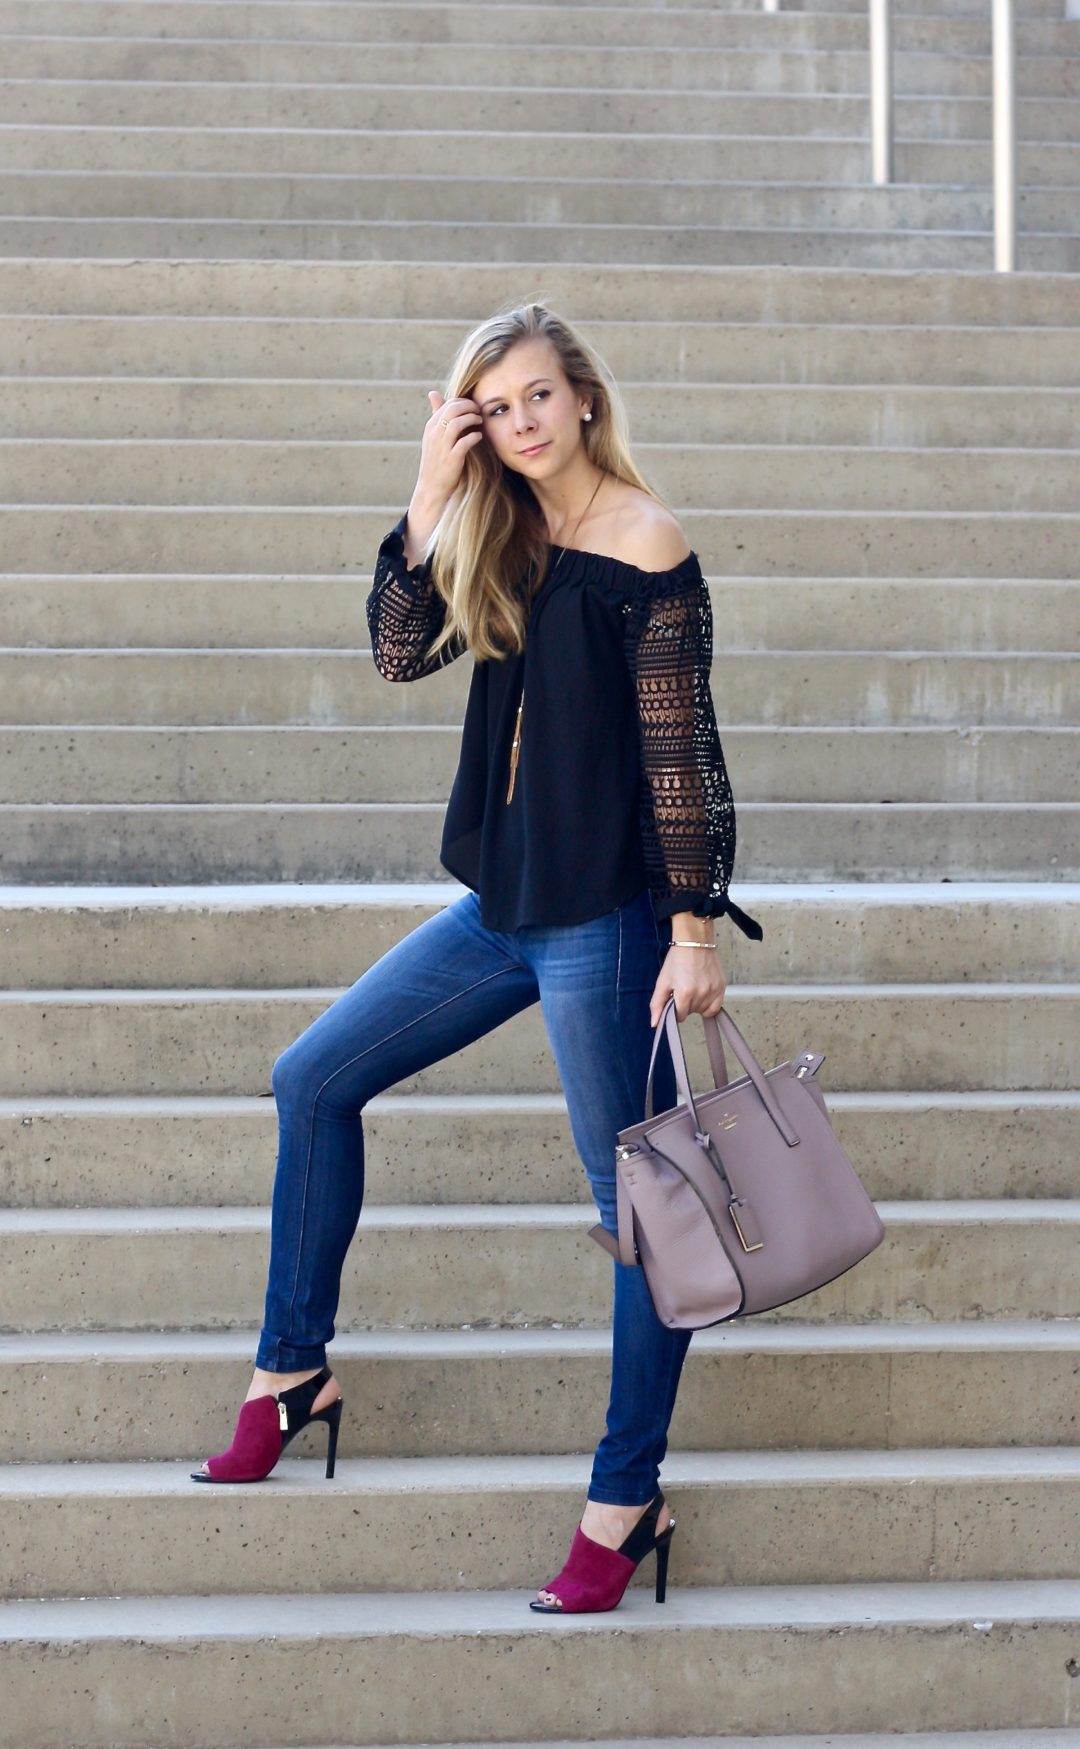 OTS, off the shoulder top in Fall, lace sleeves